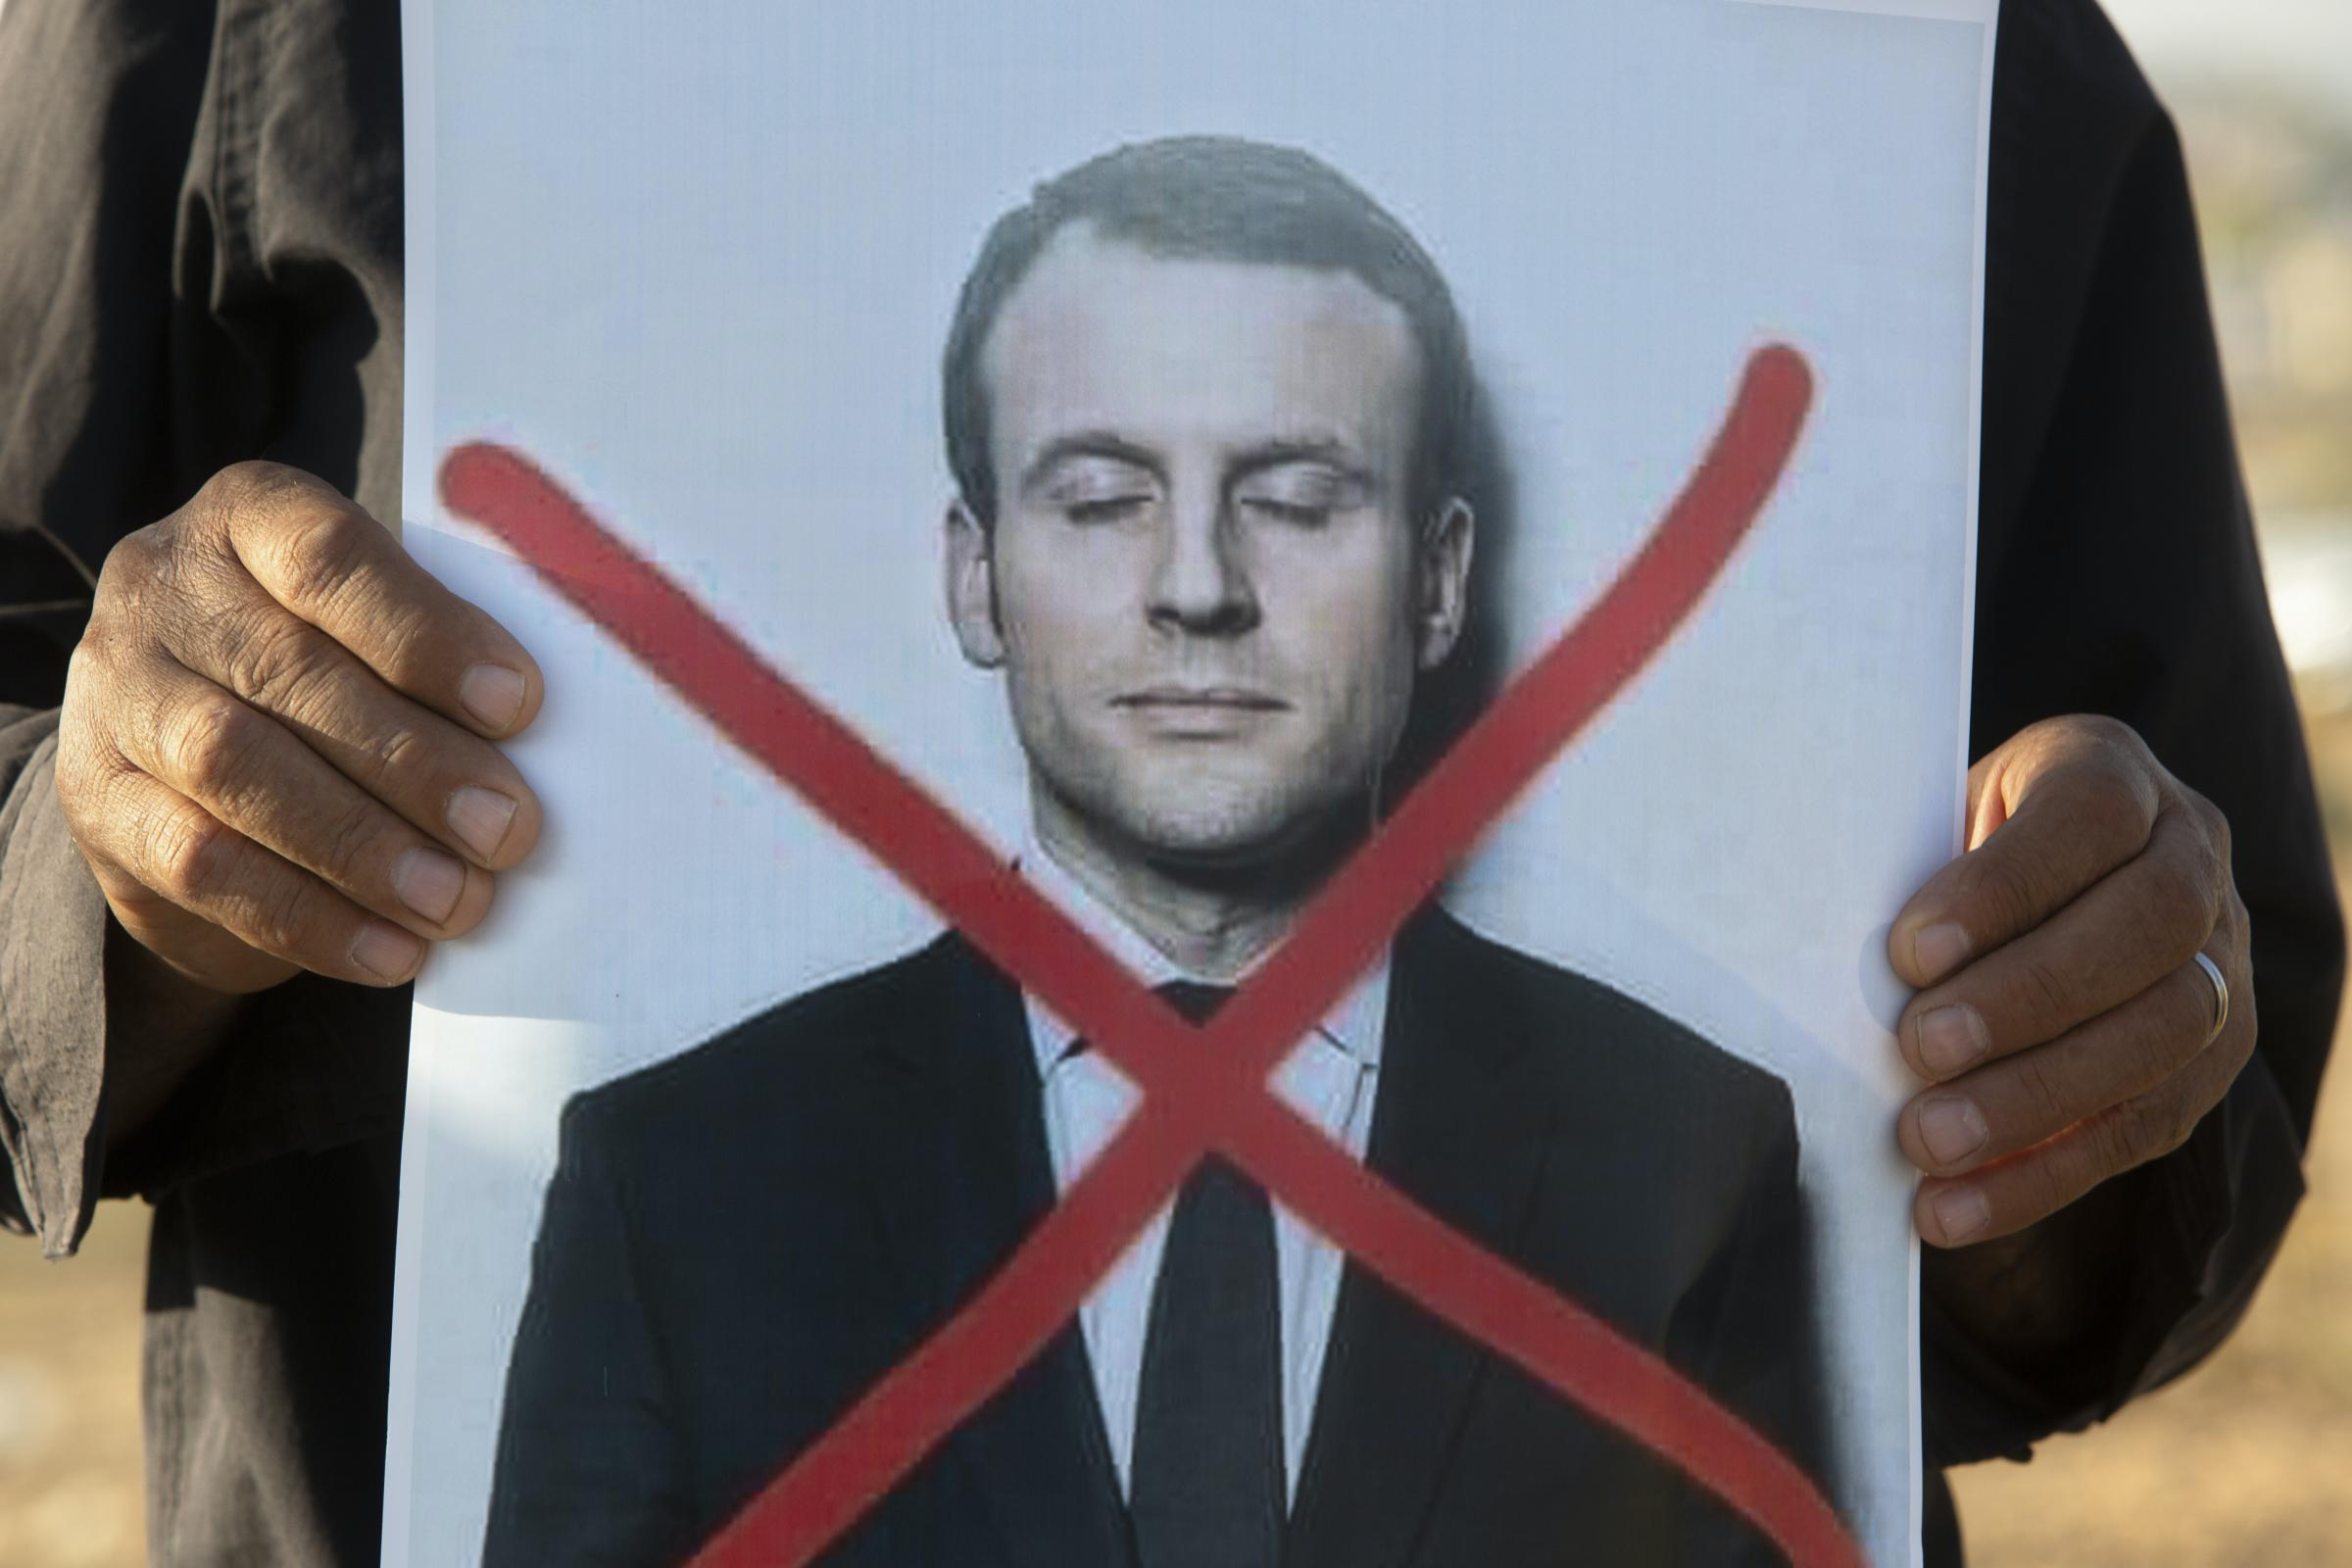 Calls for French goods boycott to protest against caricatures